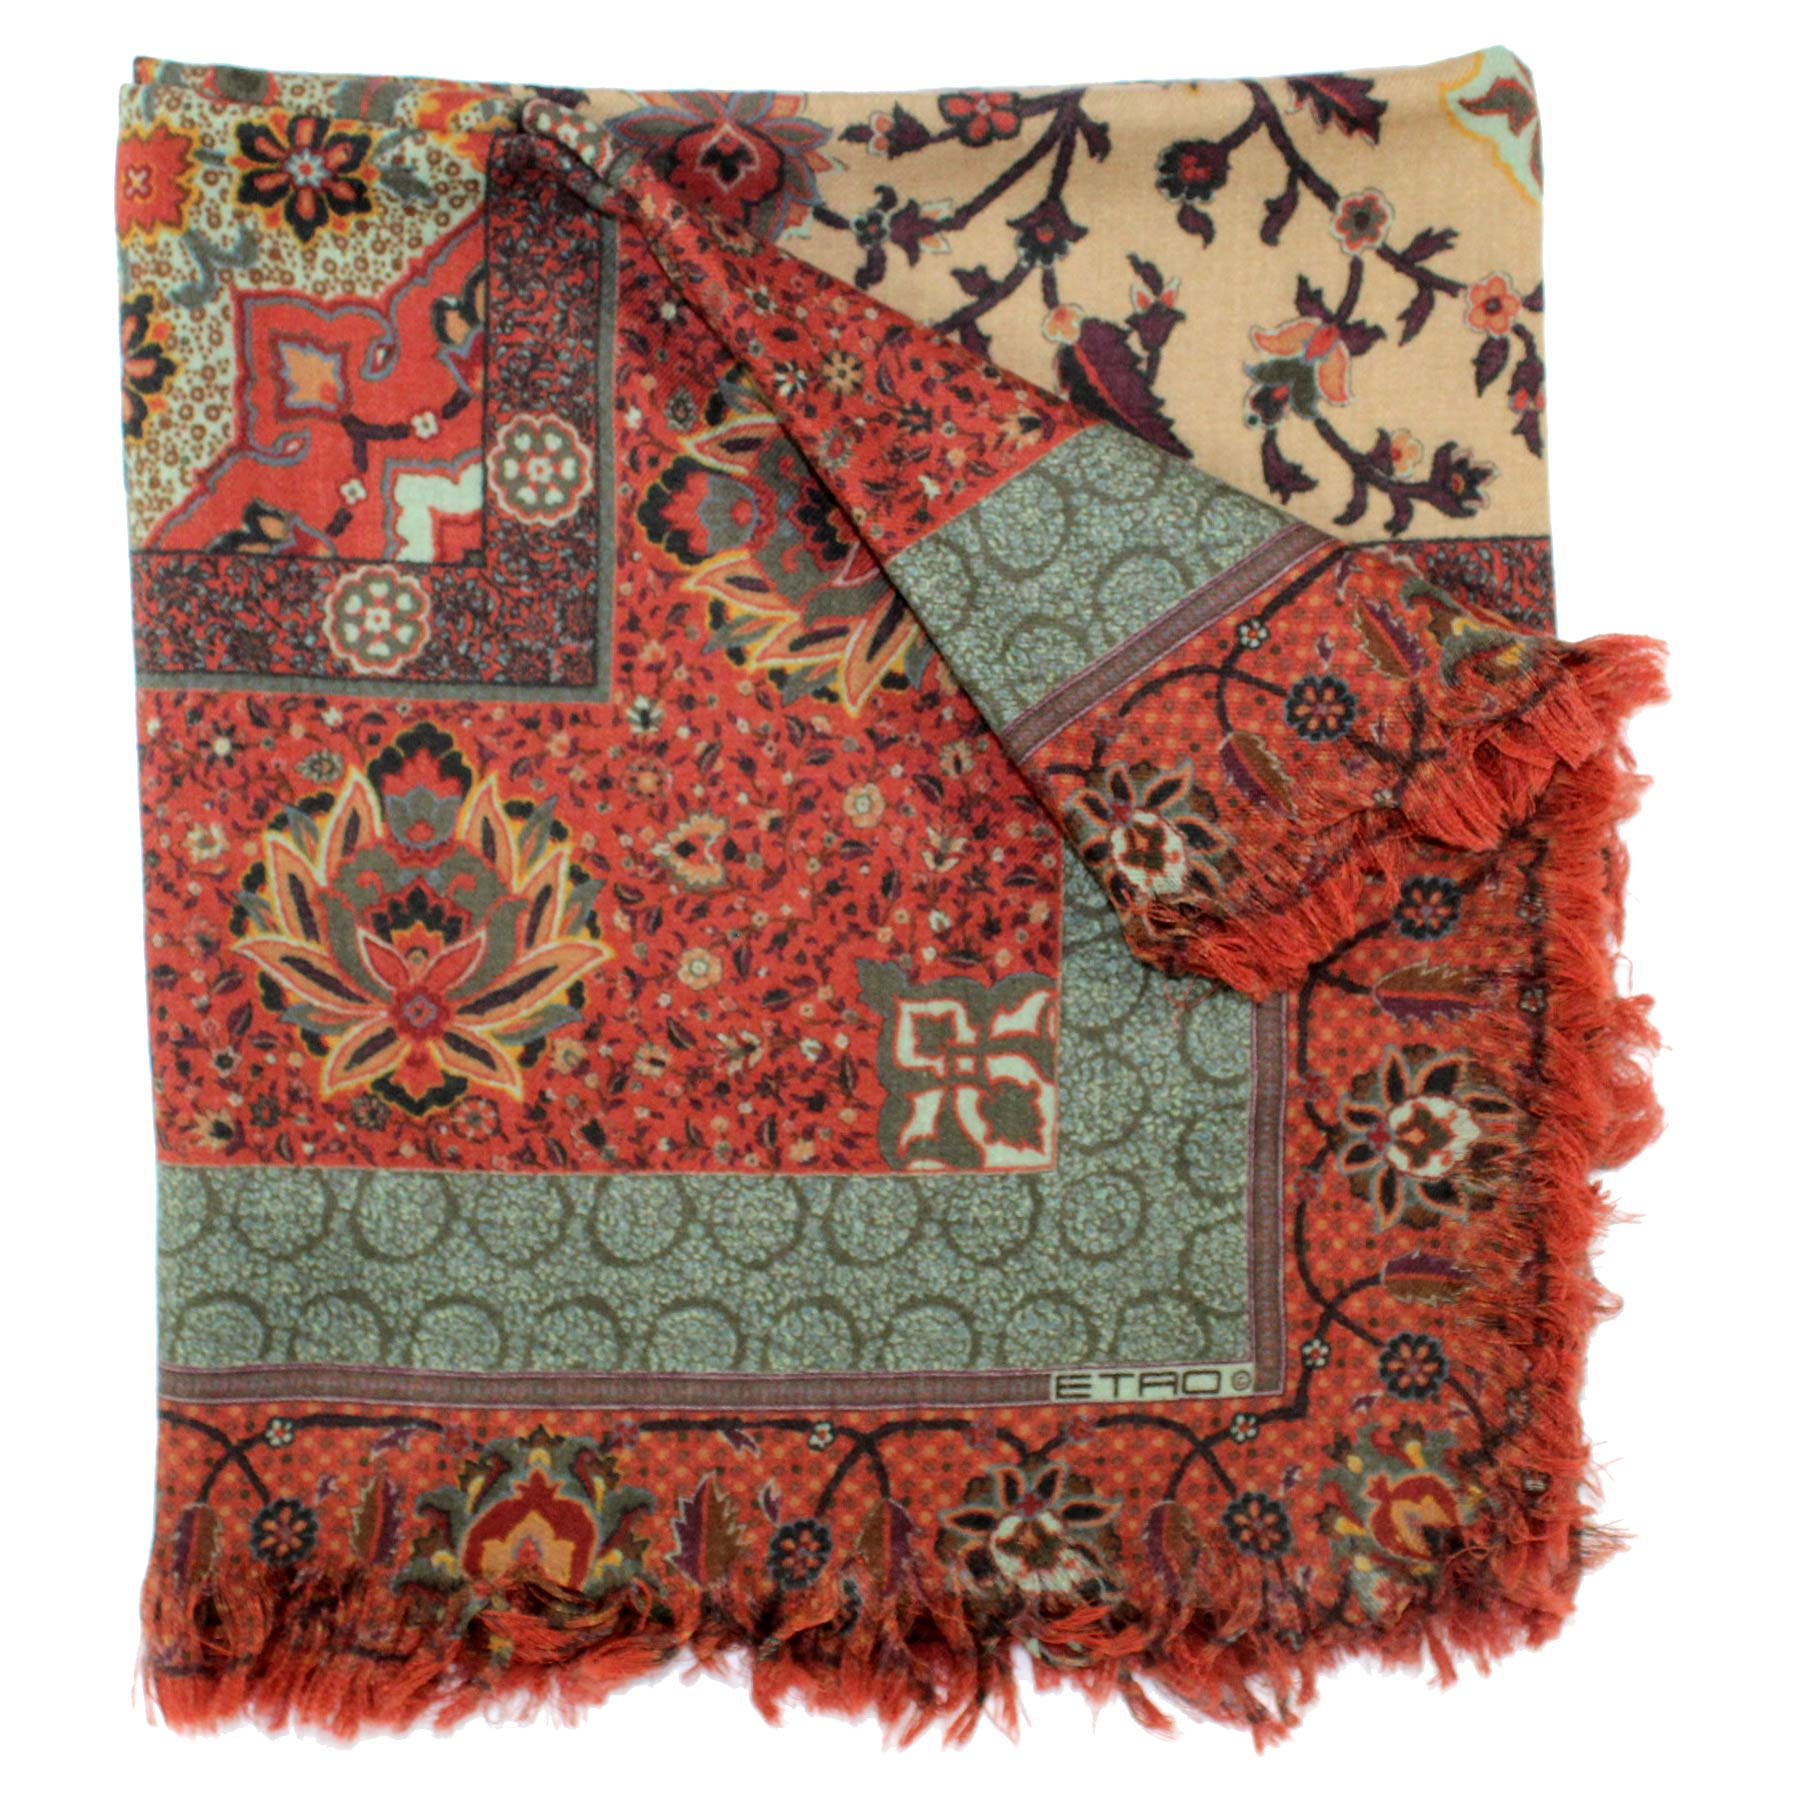 Etro Scarf Brick Red Design New